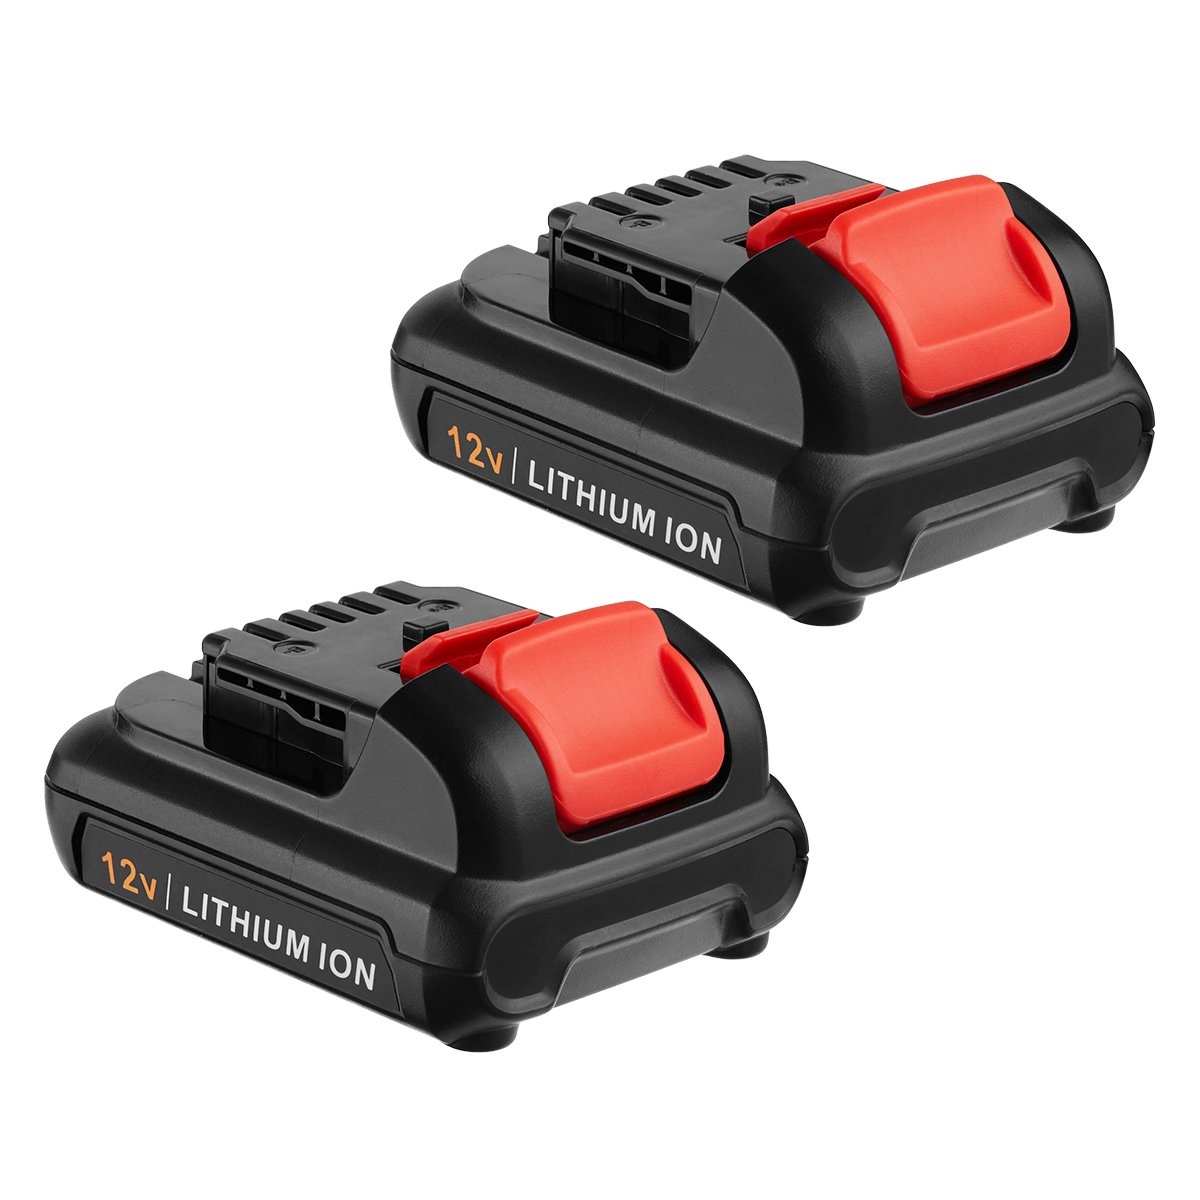 FirstPower Upgraded 4.0Ah 12V Max Lithium-Ion Battery Compatible DeWalt DCB120 DCB127 DCB127-2 DCB121, DCB100 DCB101 DCB119 Dewalt 12 volt Li-ion Battery (2 Packs)